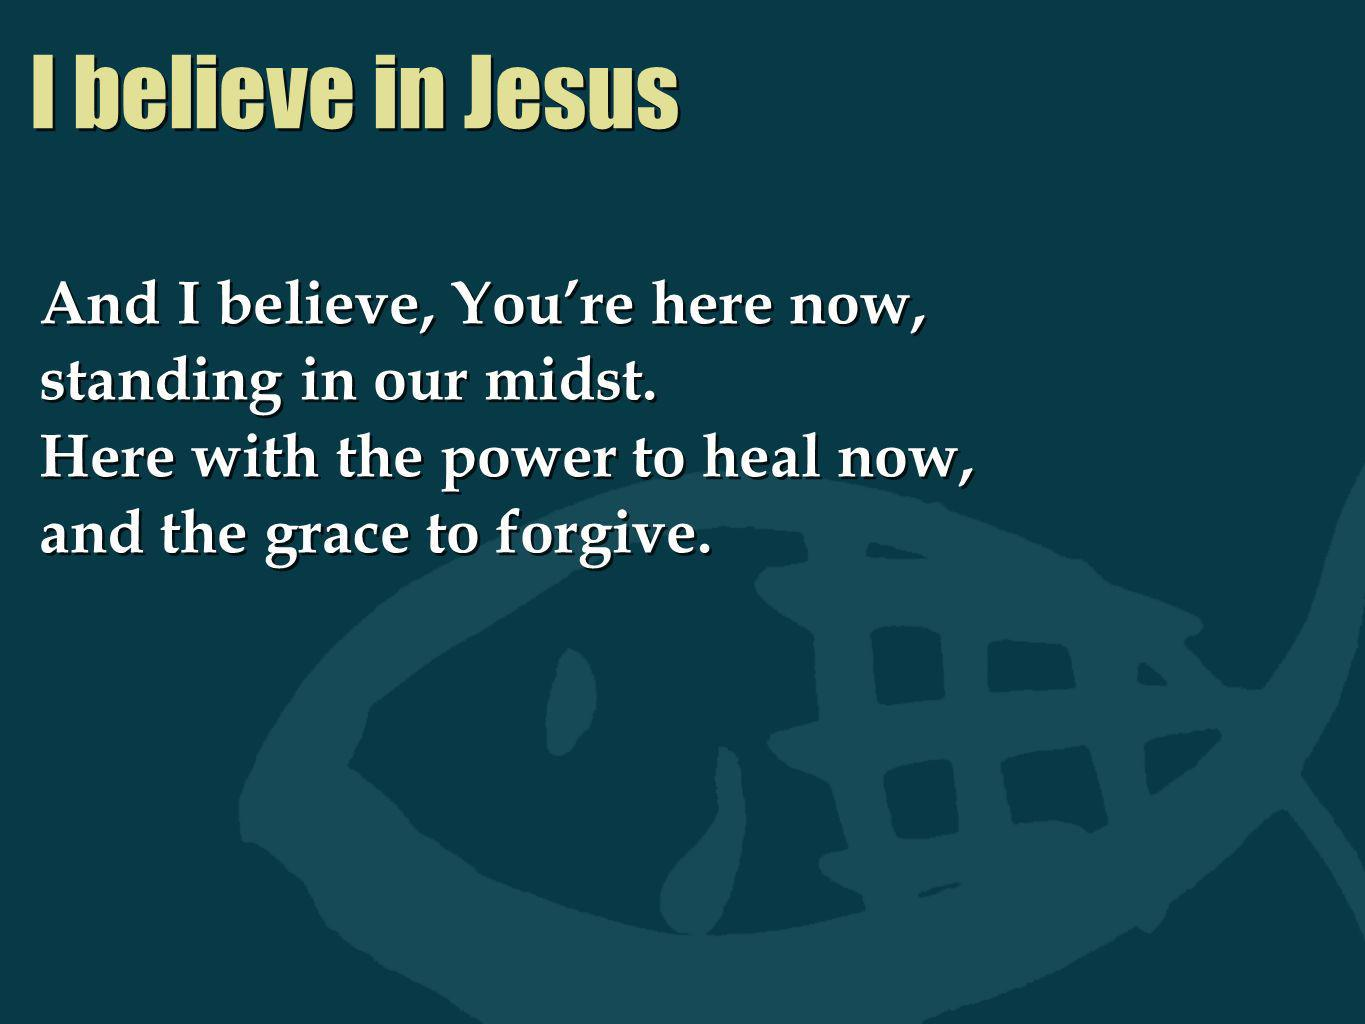 I believe in Jesus And I believe, Youre here now, standing in our midst. Here with the power to heal now, and the grace to forgive. And I believe, You